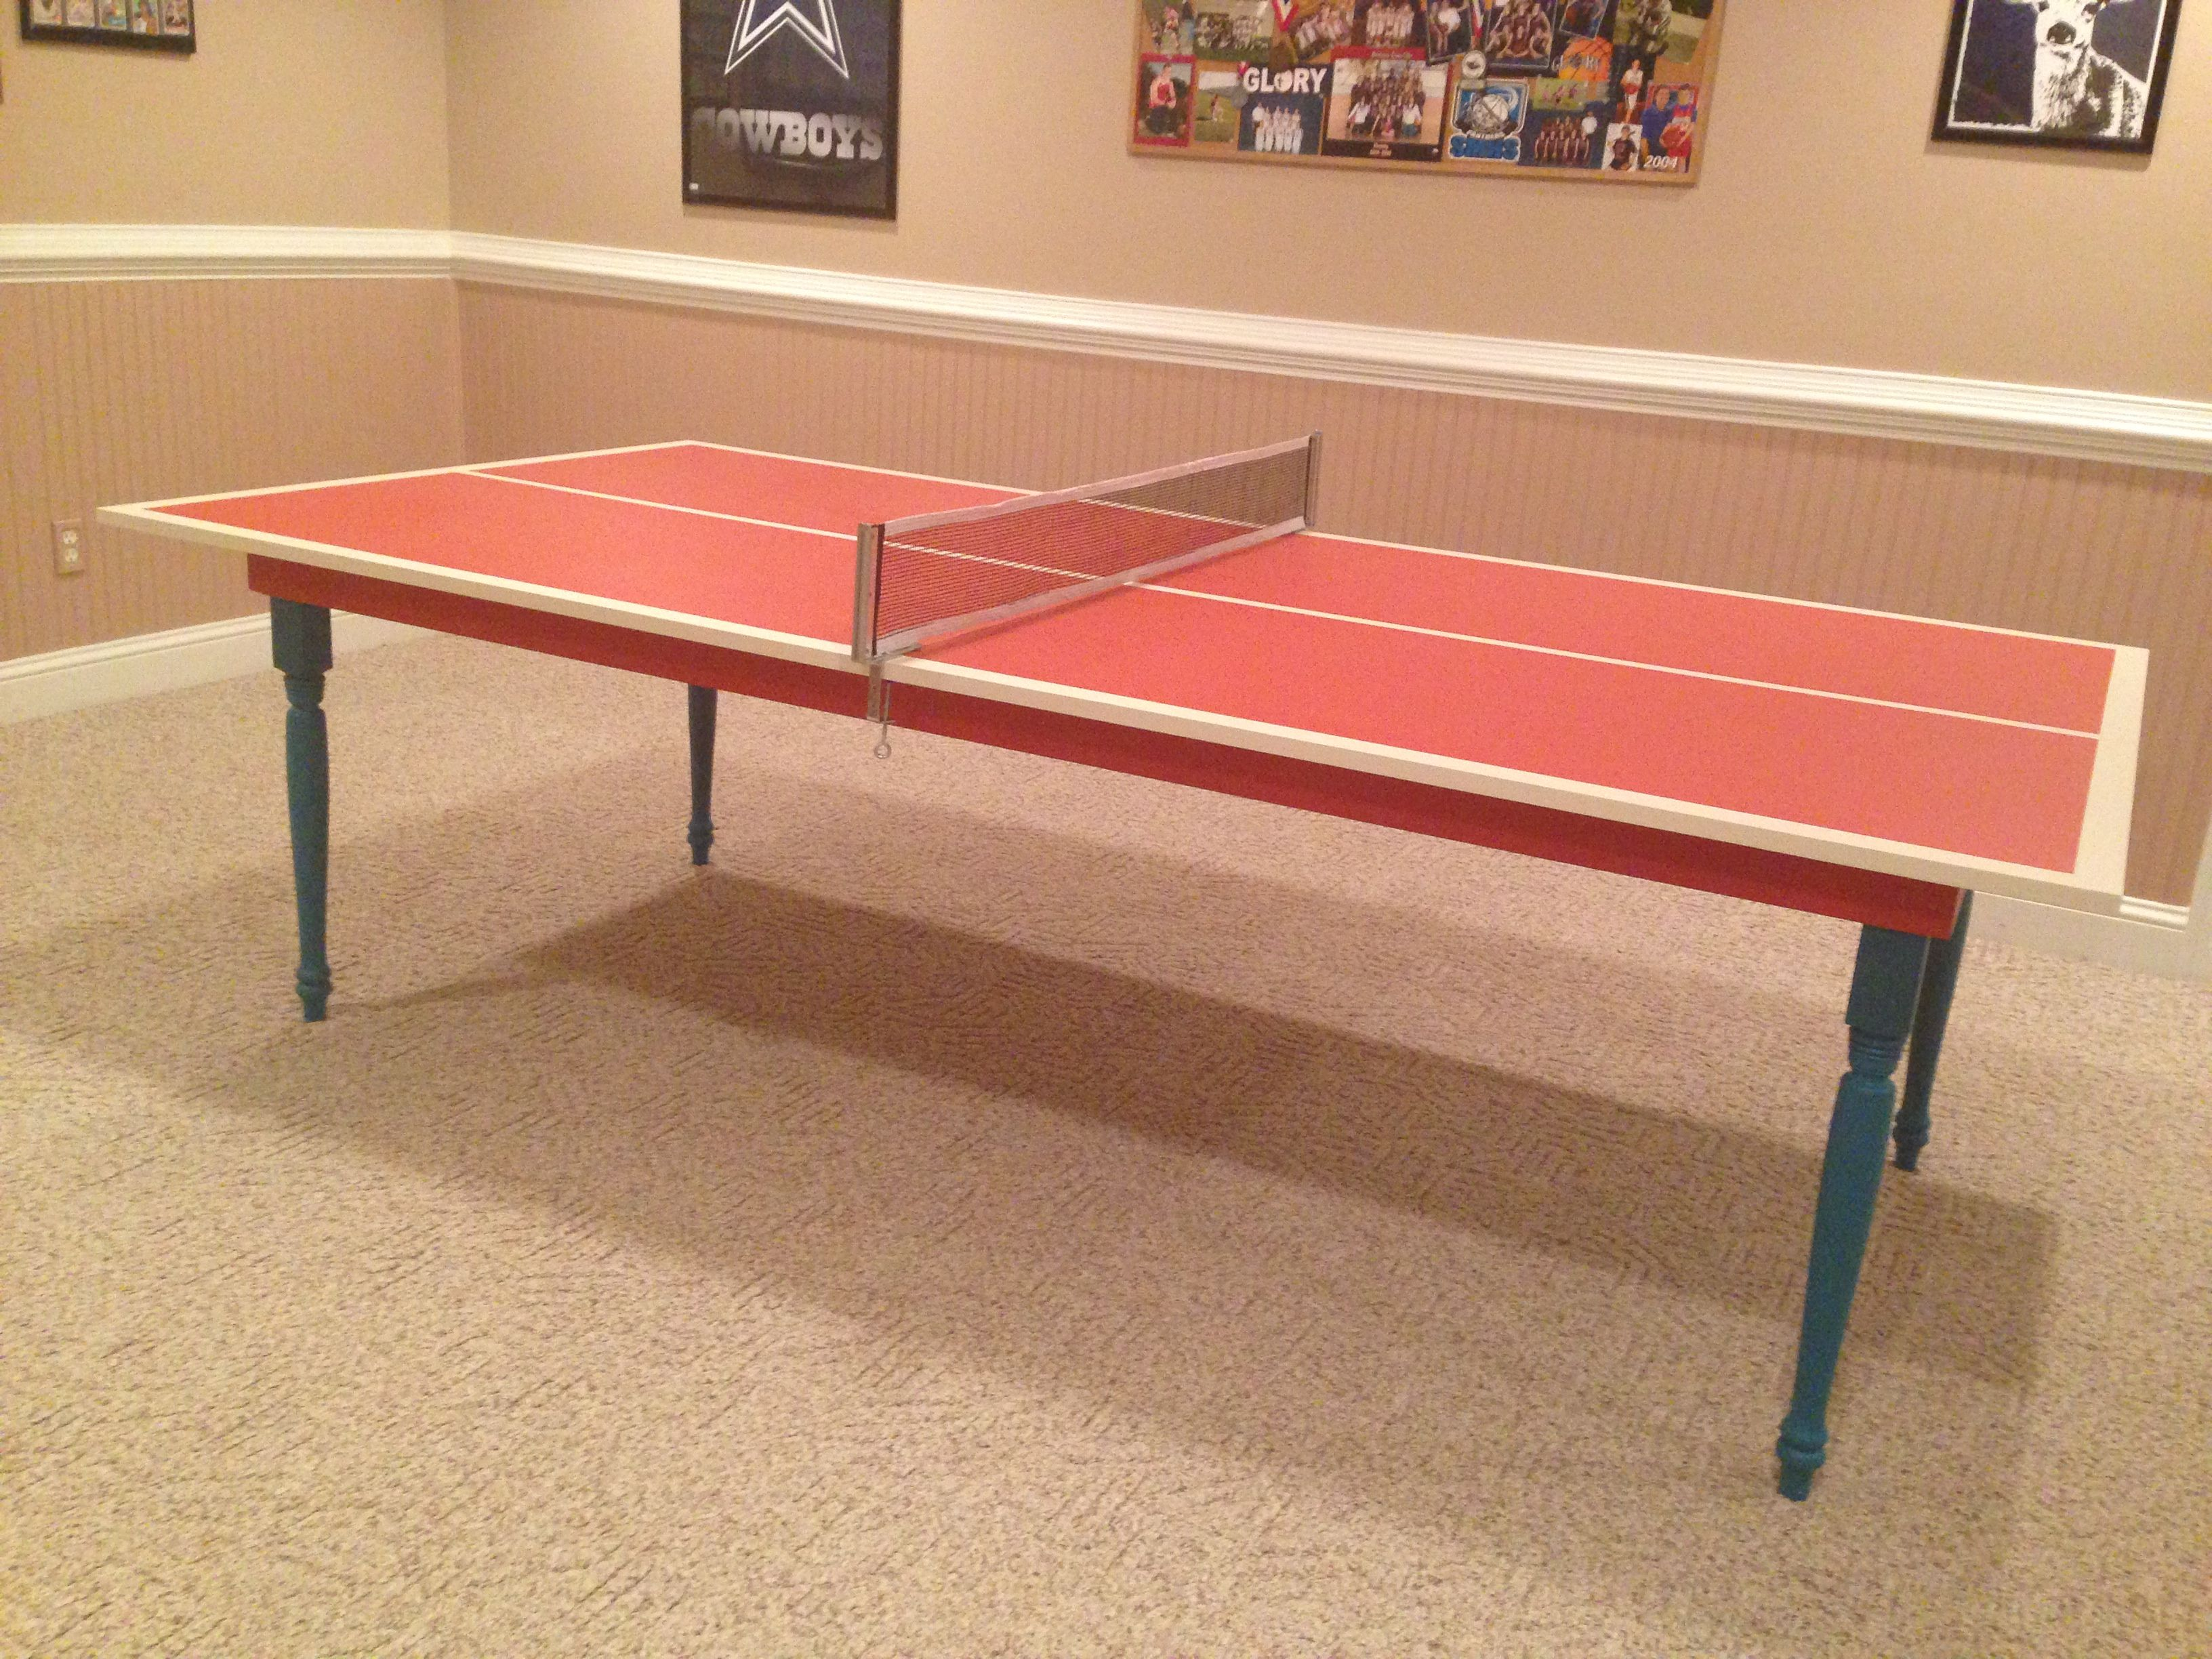 Awesome Having A Ping Pong Table Is A MUST For Me, Thereu0027s Just Nothing Like  Relieving